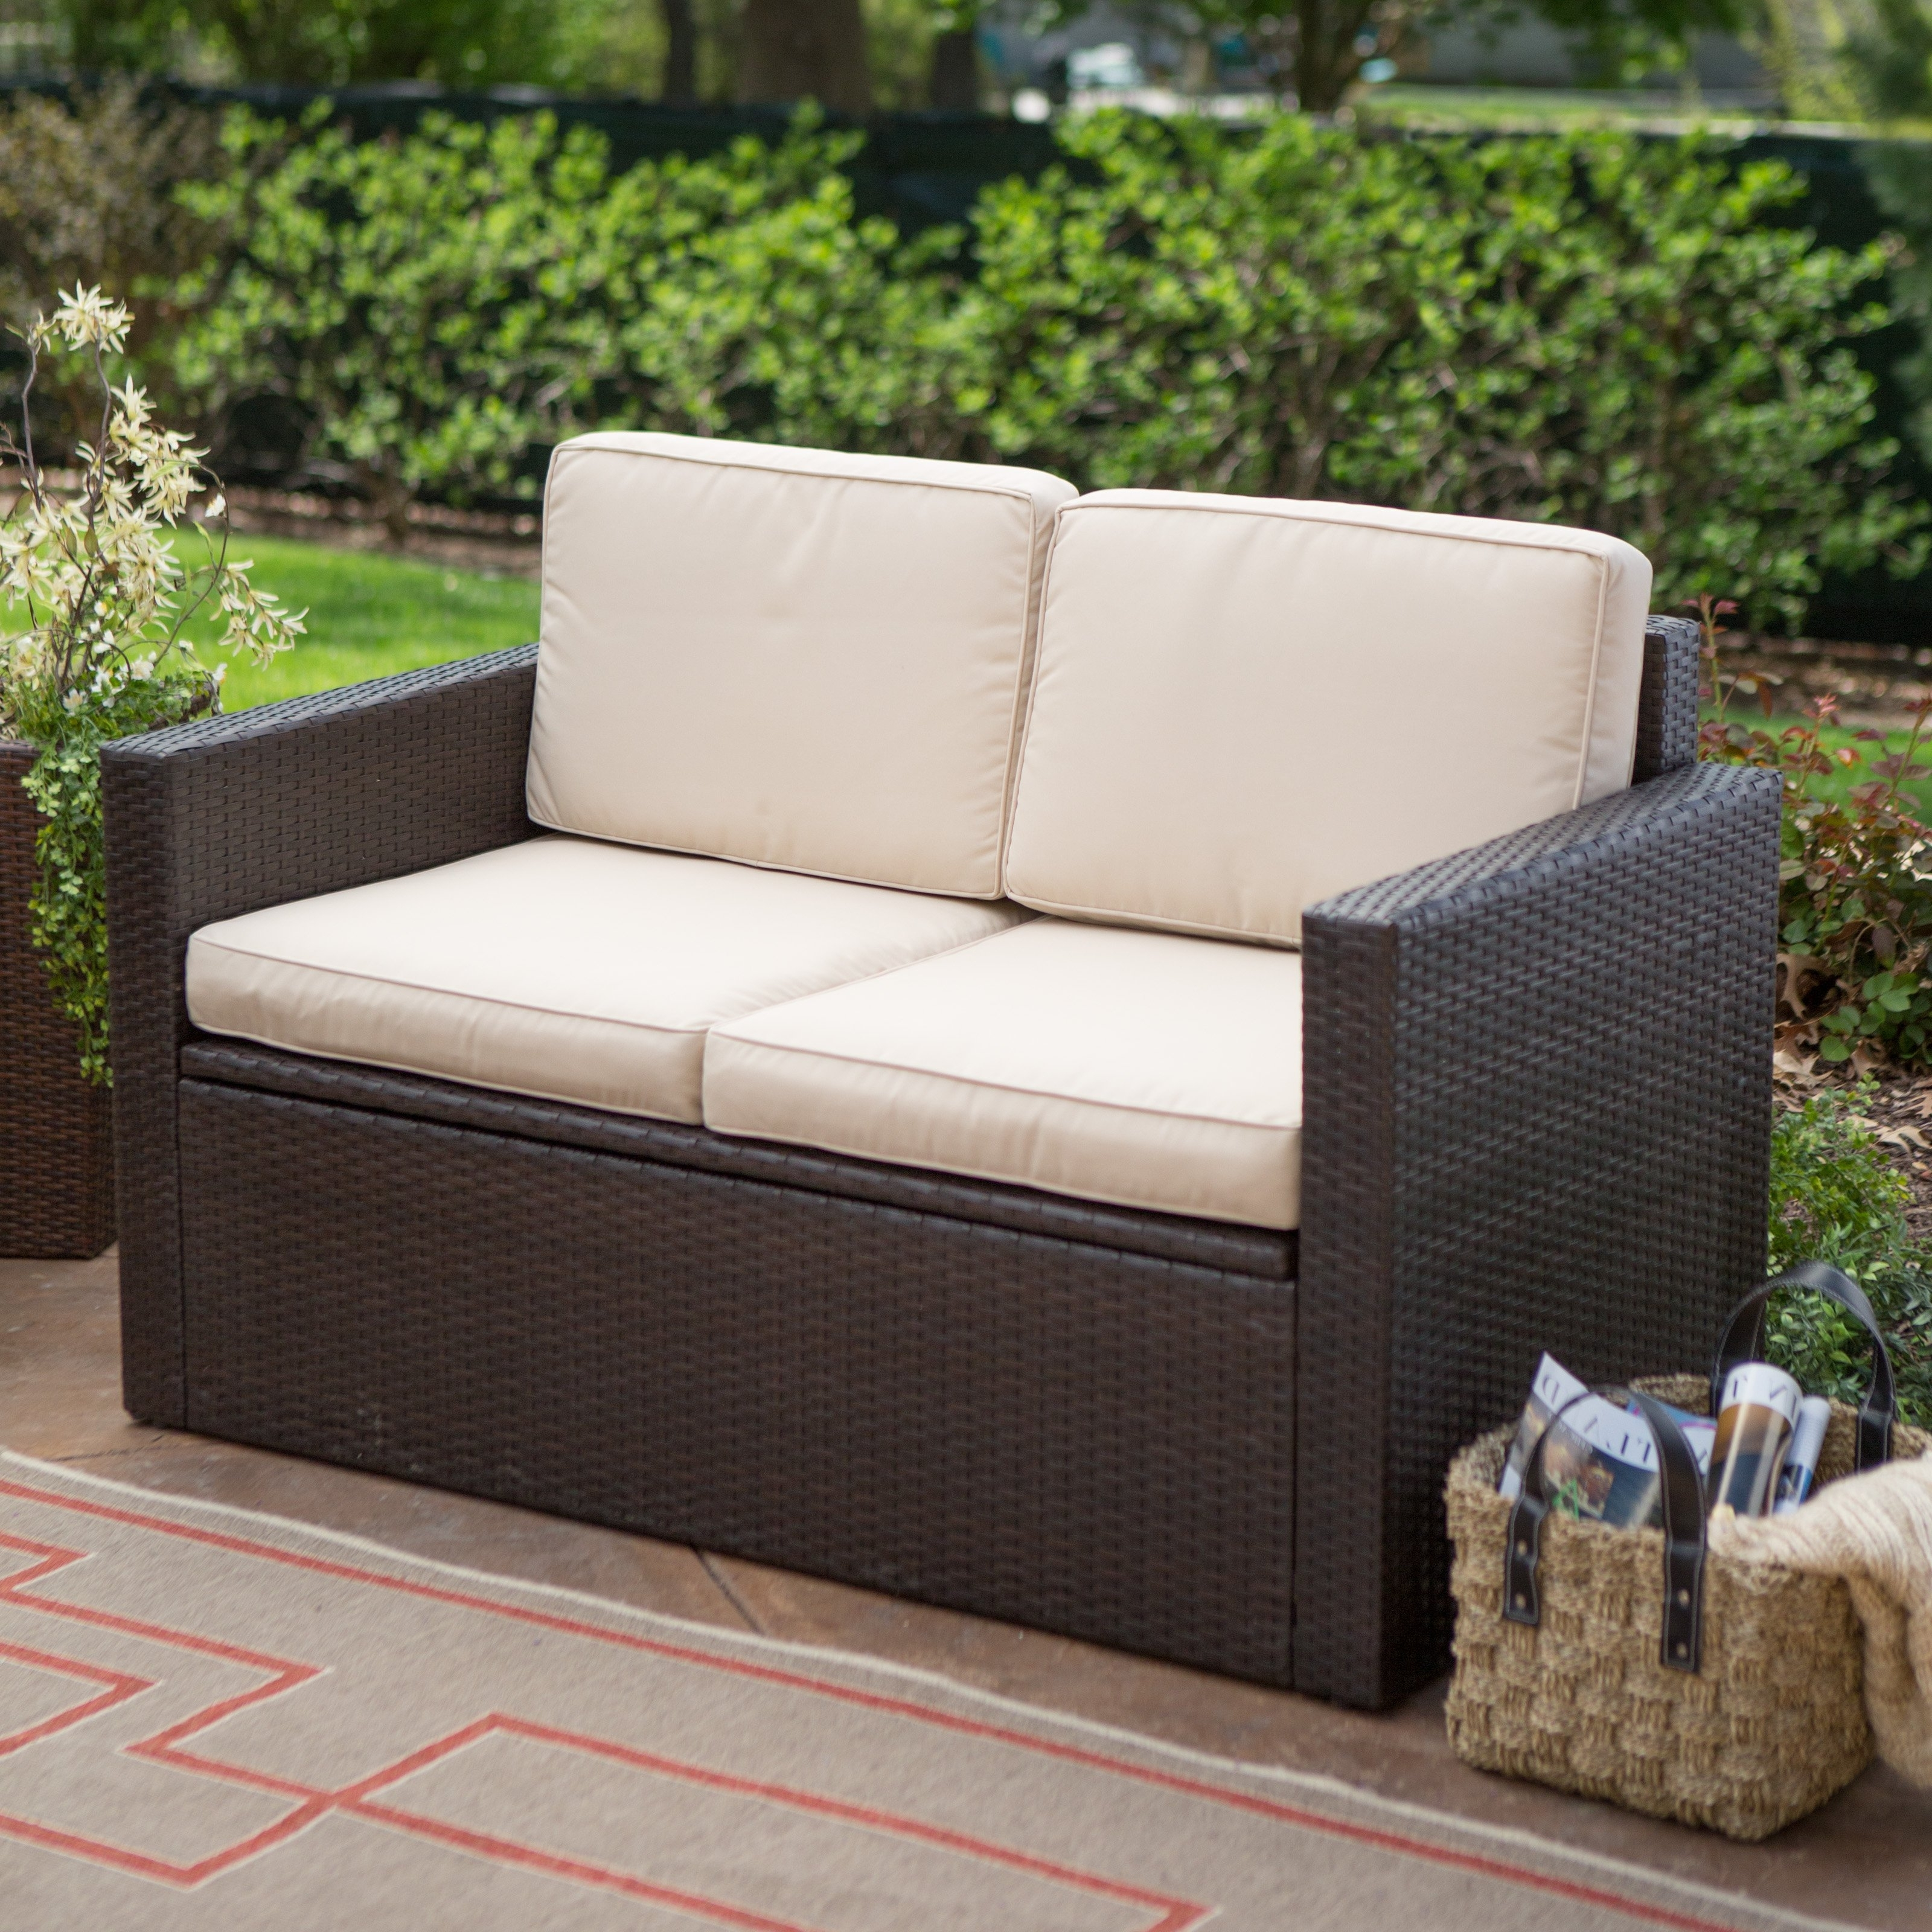 Patio Furniture Storage Elegant Coral Coast Berea Wicker 4 Piece Throughout Most Current Patio Conversation Set With Storage (View 6 of 20)